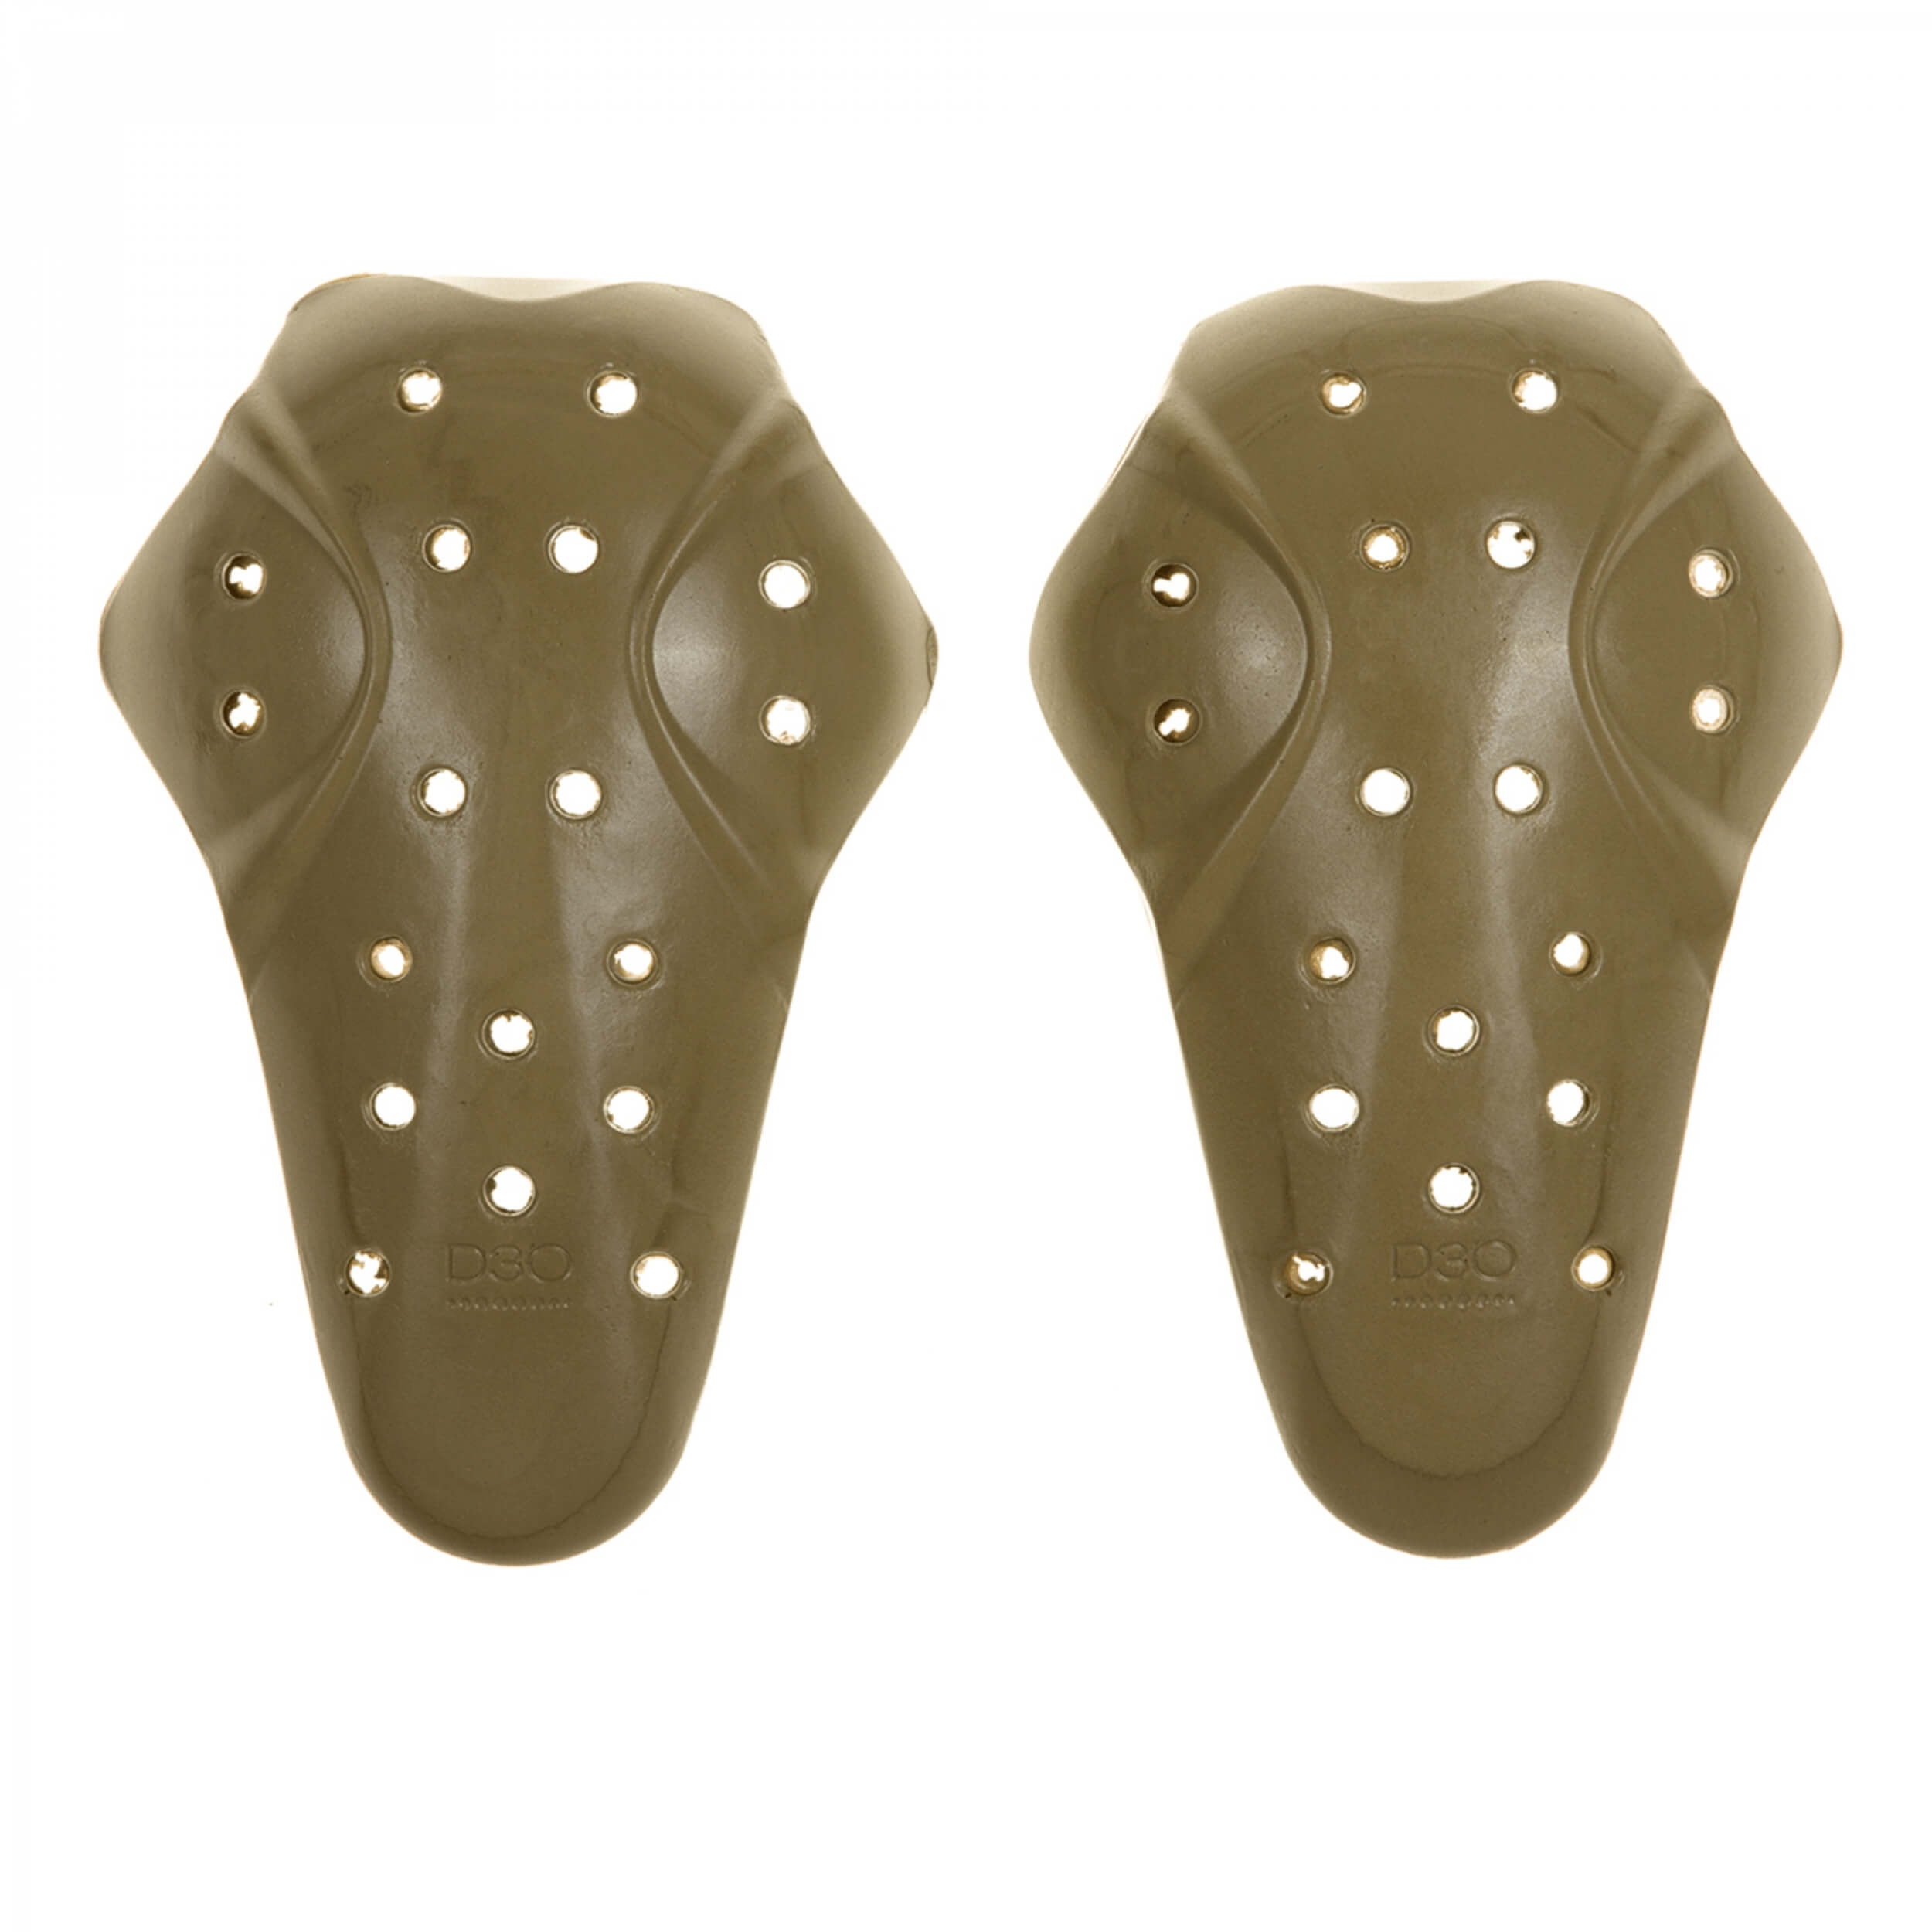 D3O P5 Knee Pad tan